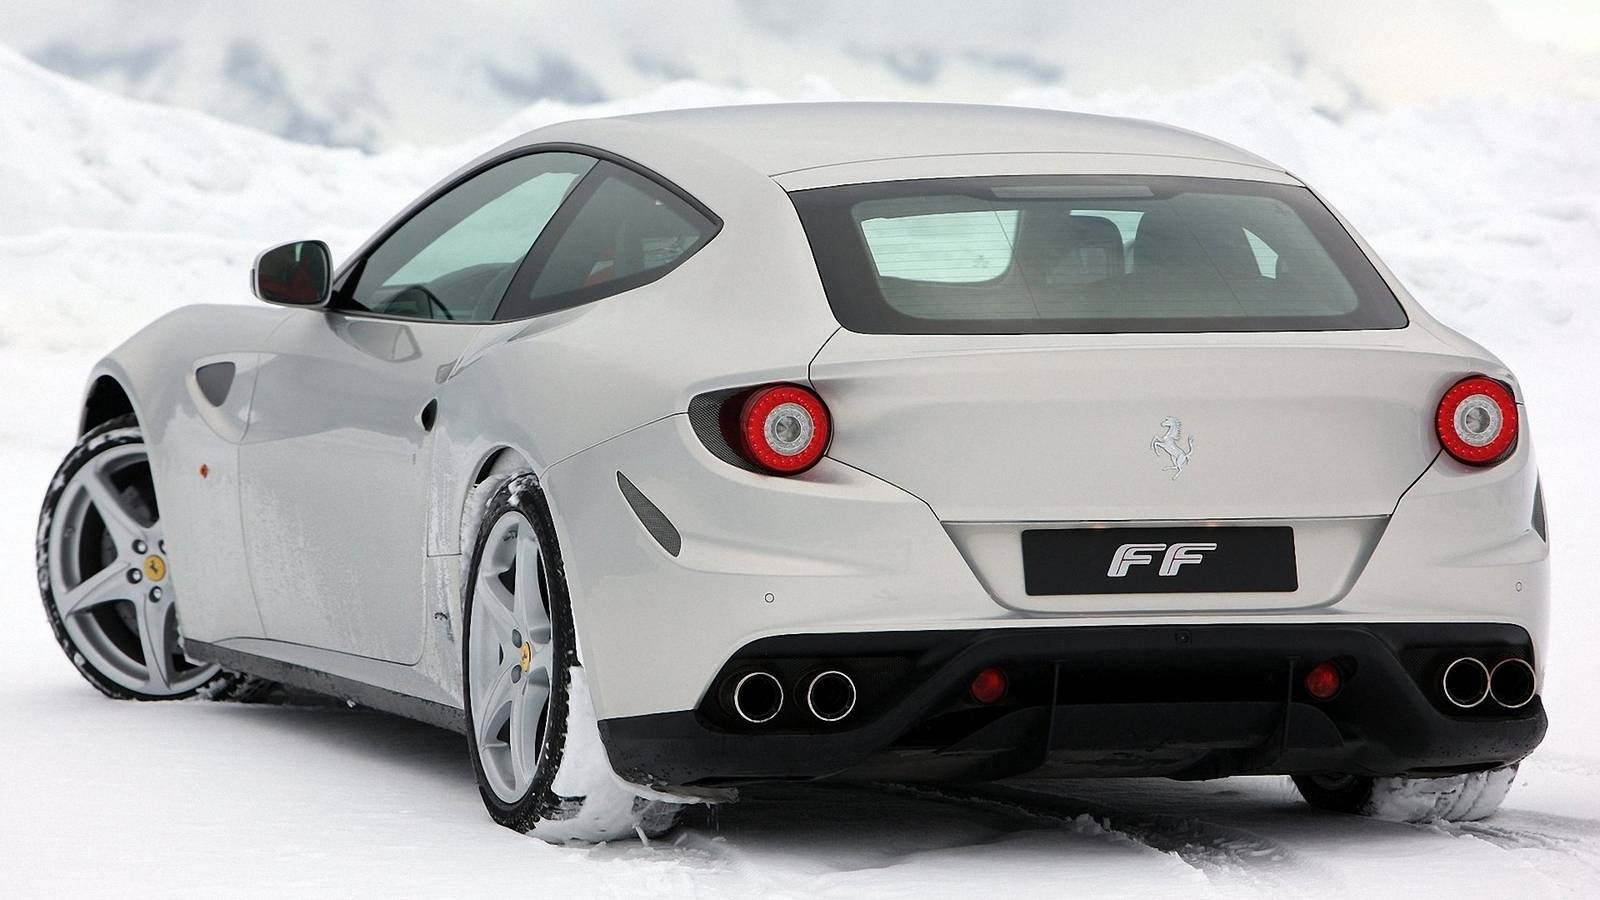 ferrari_ff_shooting_brake_0-100_3